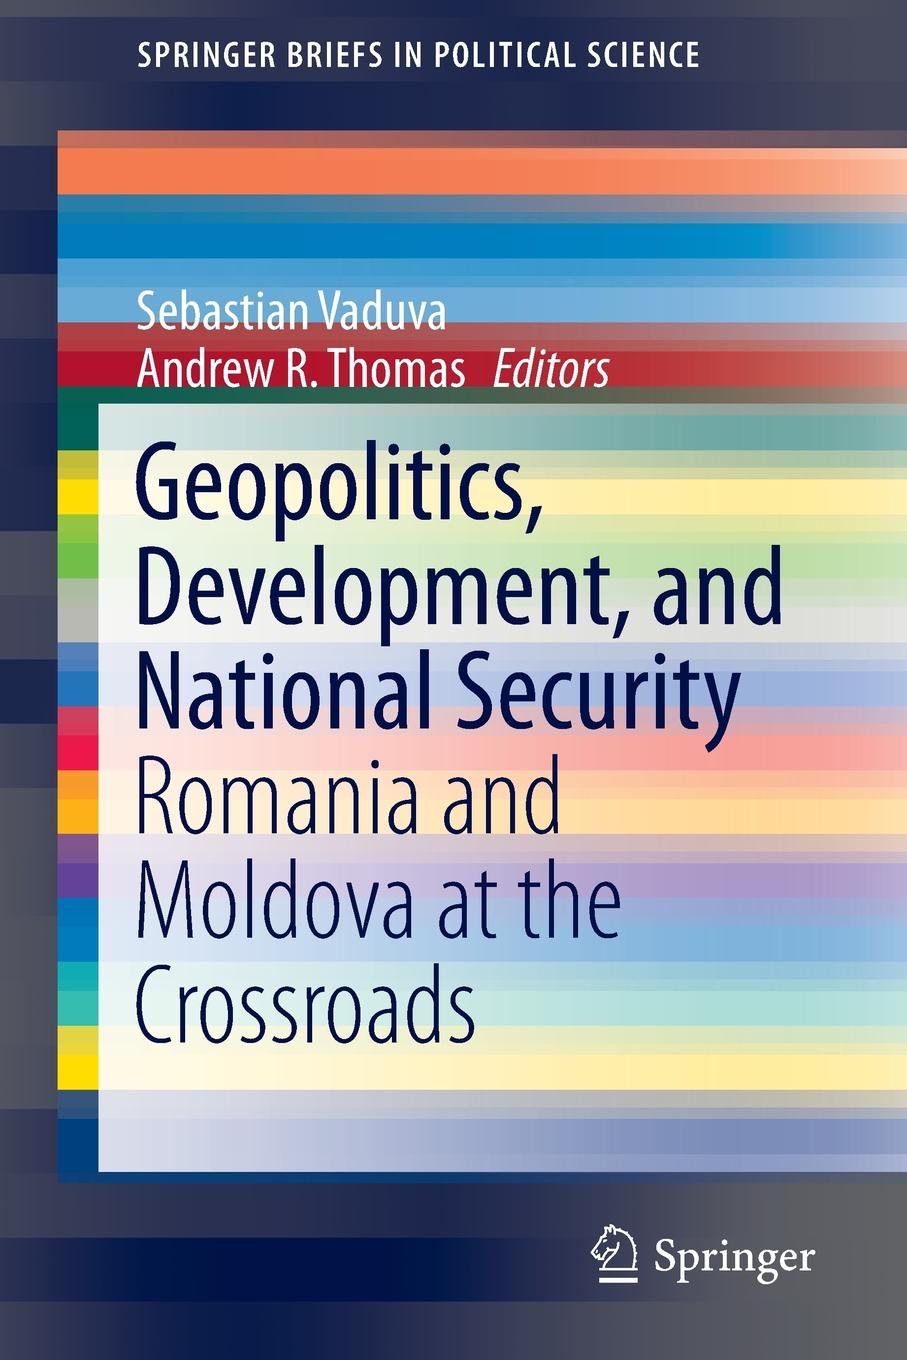 Geopolitics, Development, and National Security. Romania and Moldova at the Crossroads two poets at crossroads